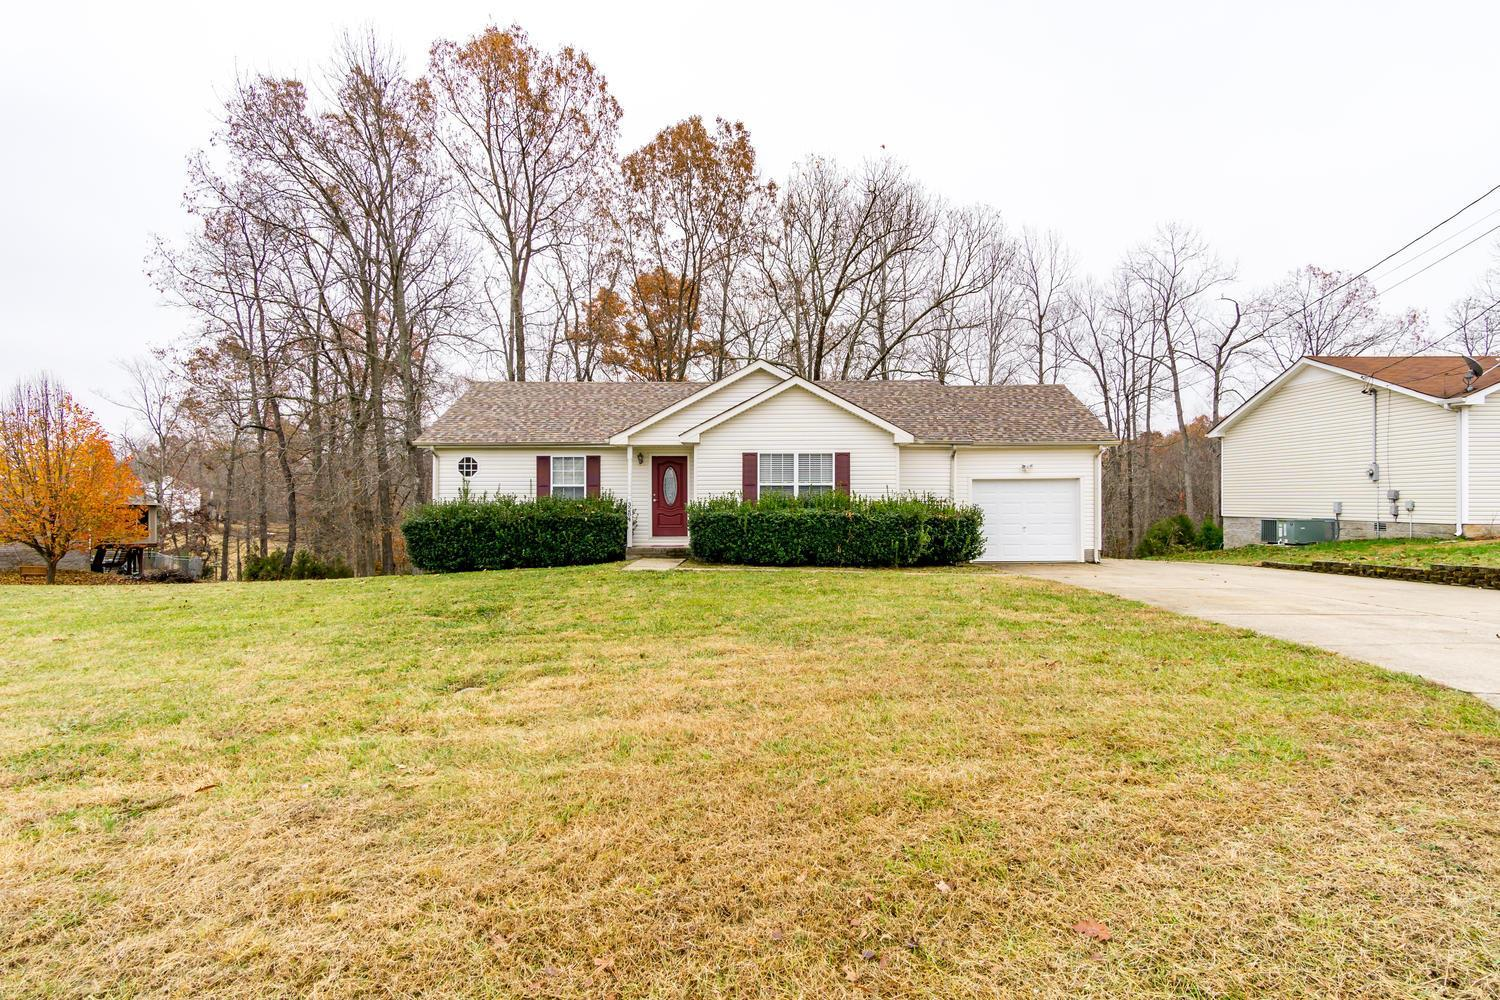 3284 Backridge Rd, Woodlawn, TN 37191 - Woodlawn, TN real estate listing